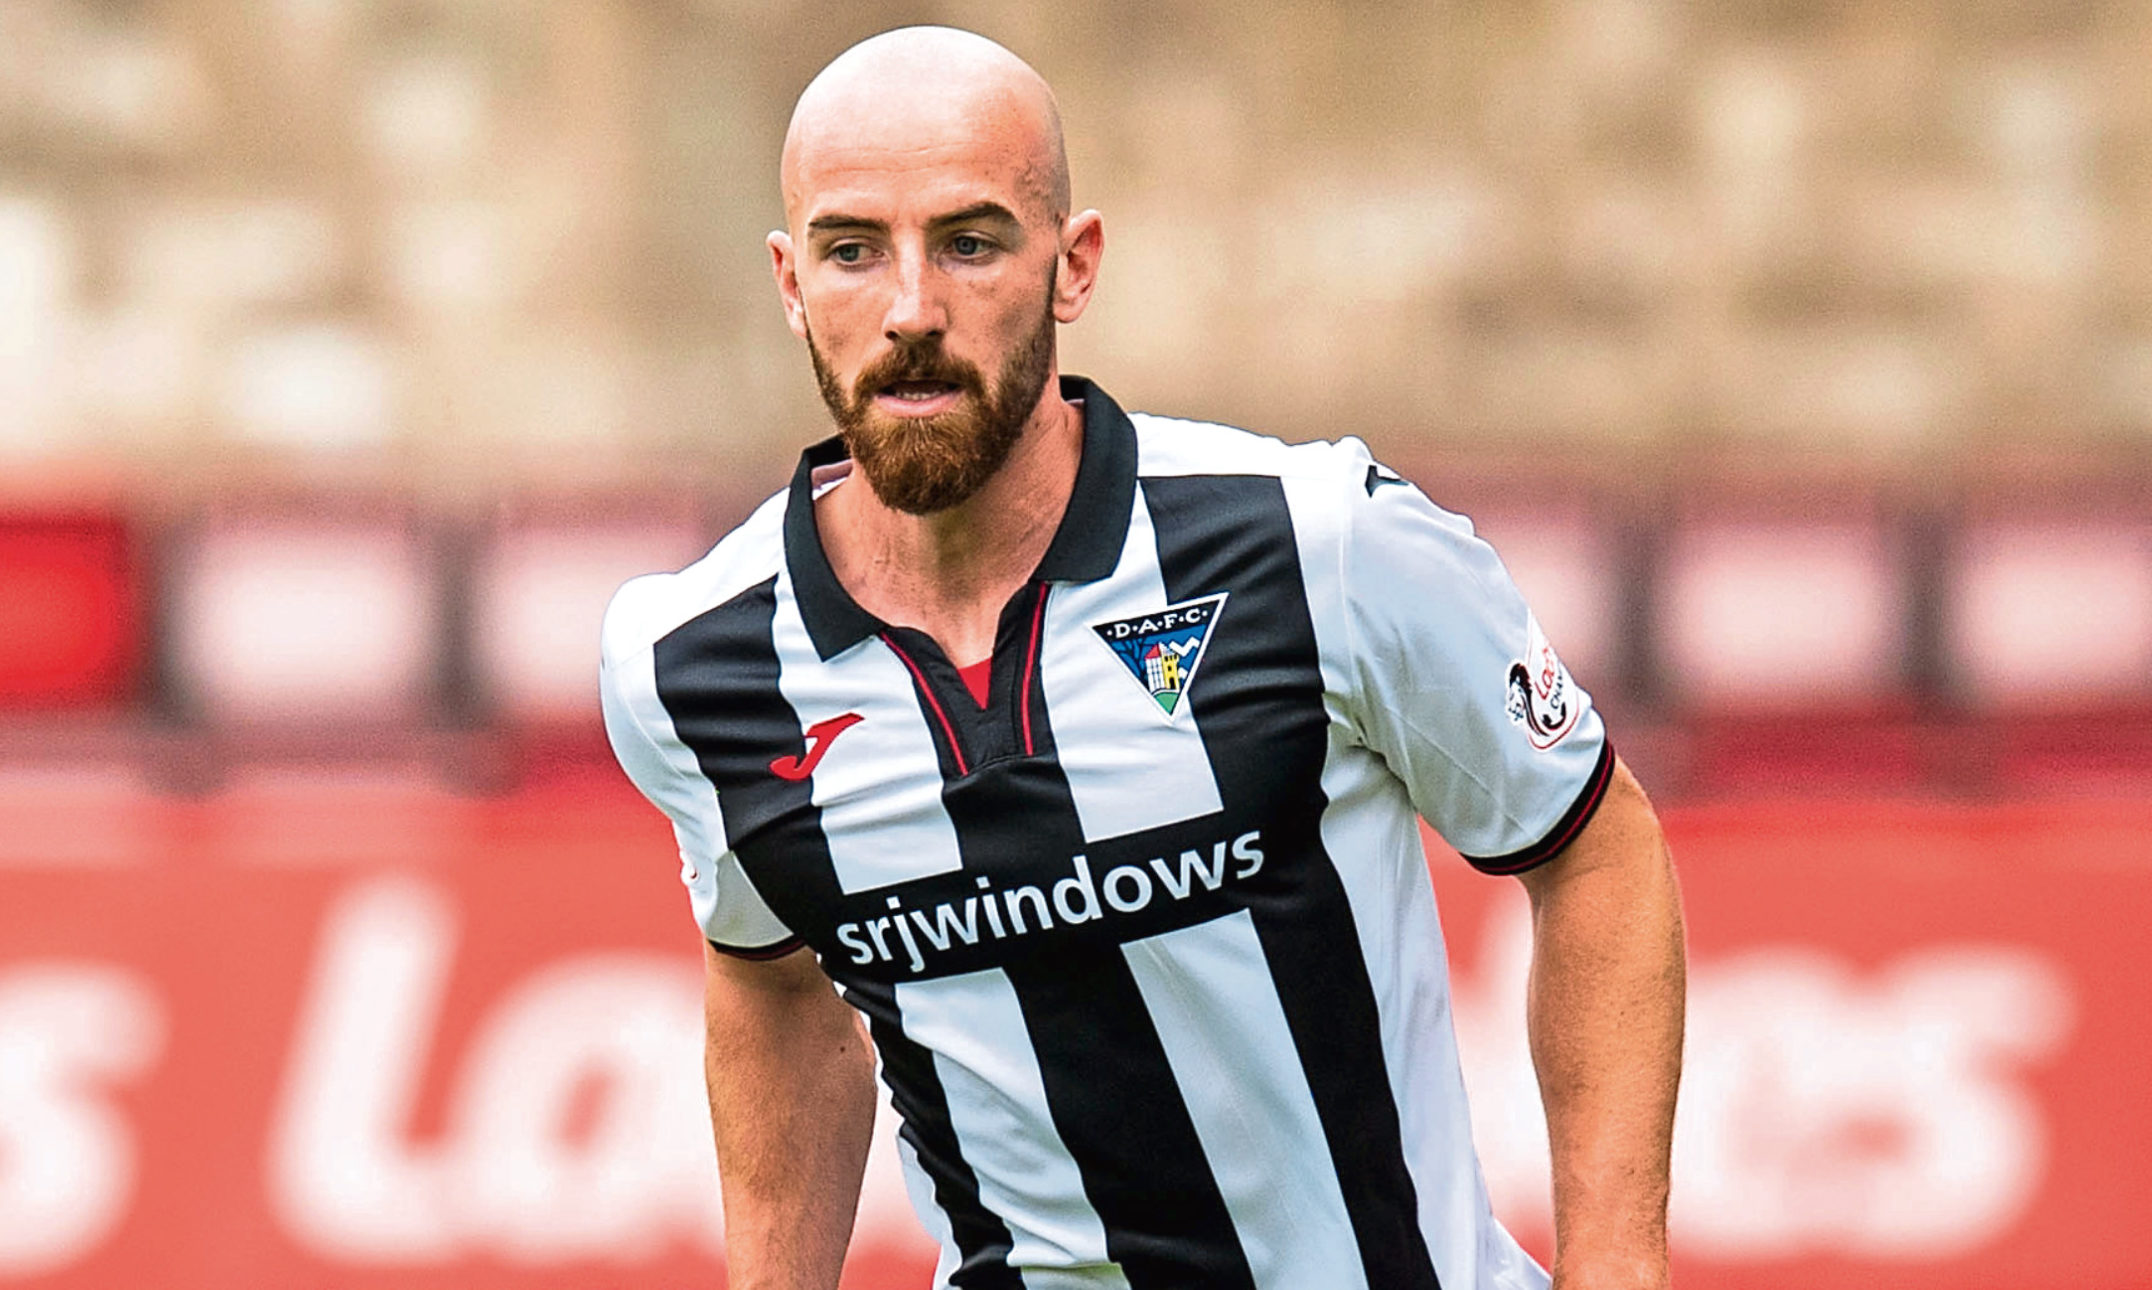 James Vincent in action for Dunfermline.